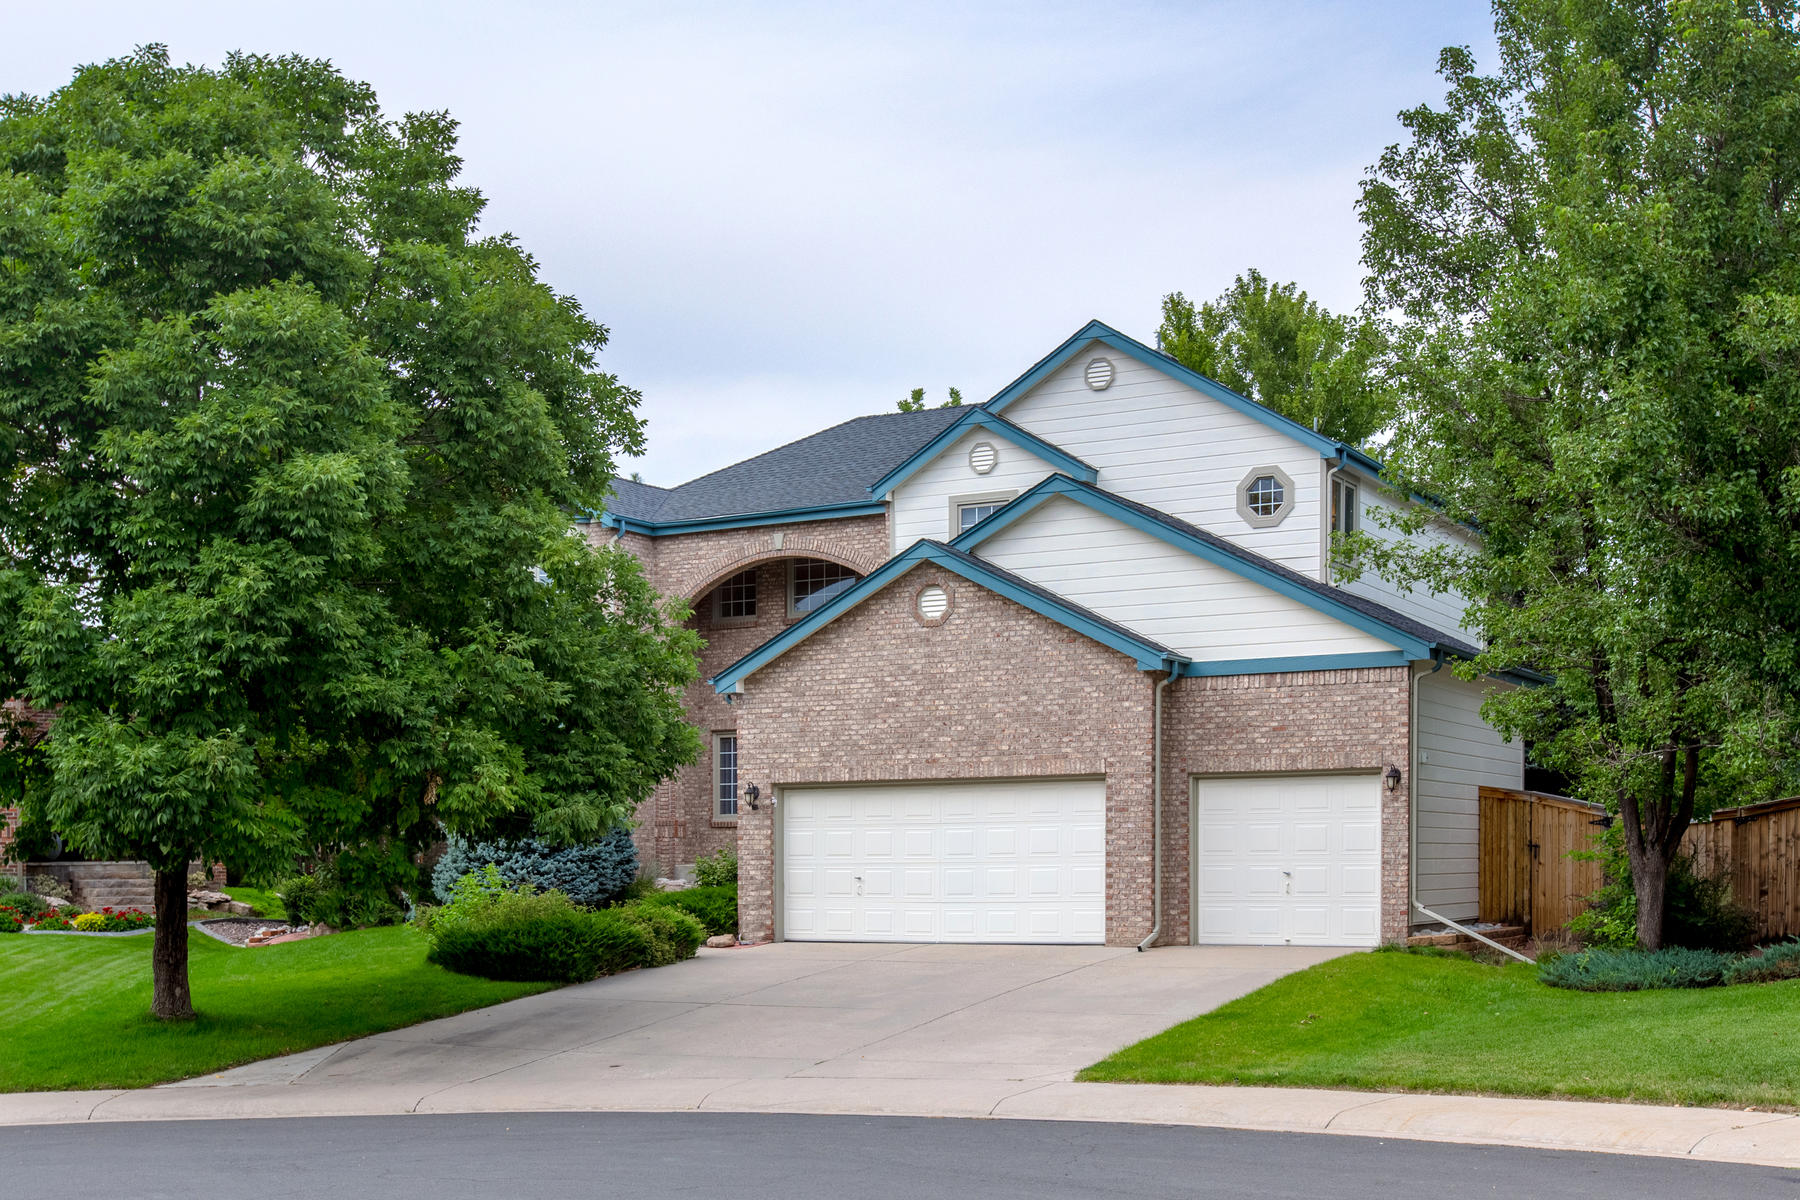 Single Family Home for Active at This lovely home in Littleton has it all including a beautiful cul de sac lot. 6429 Serengeti Place Littleton, Colorado 80124 United States